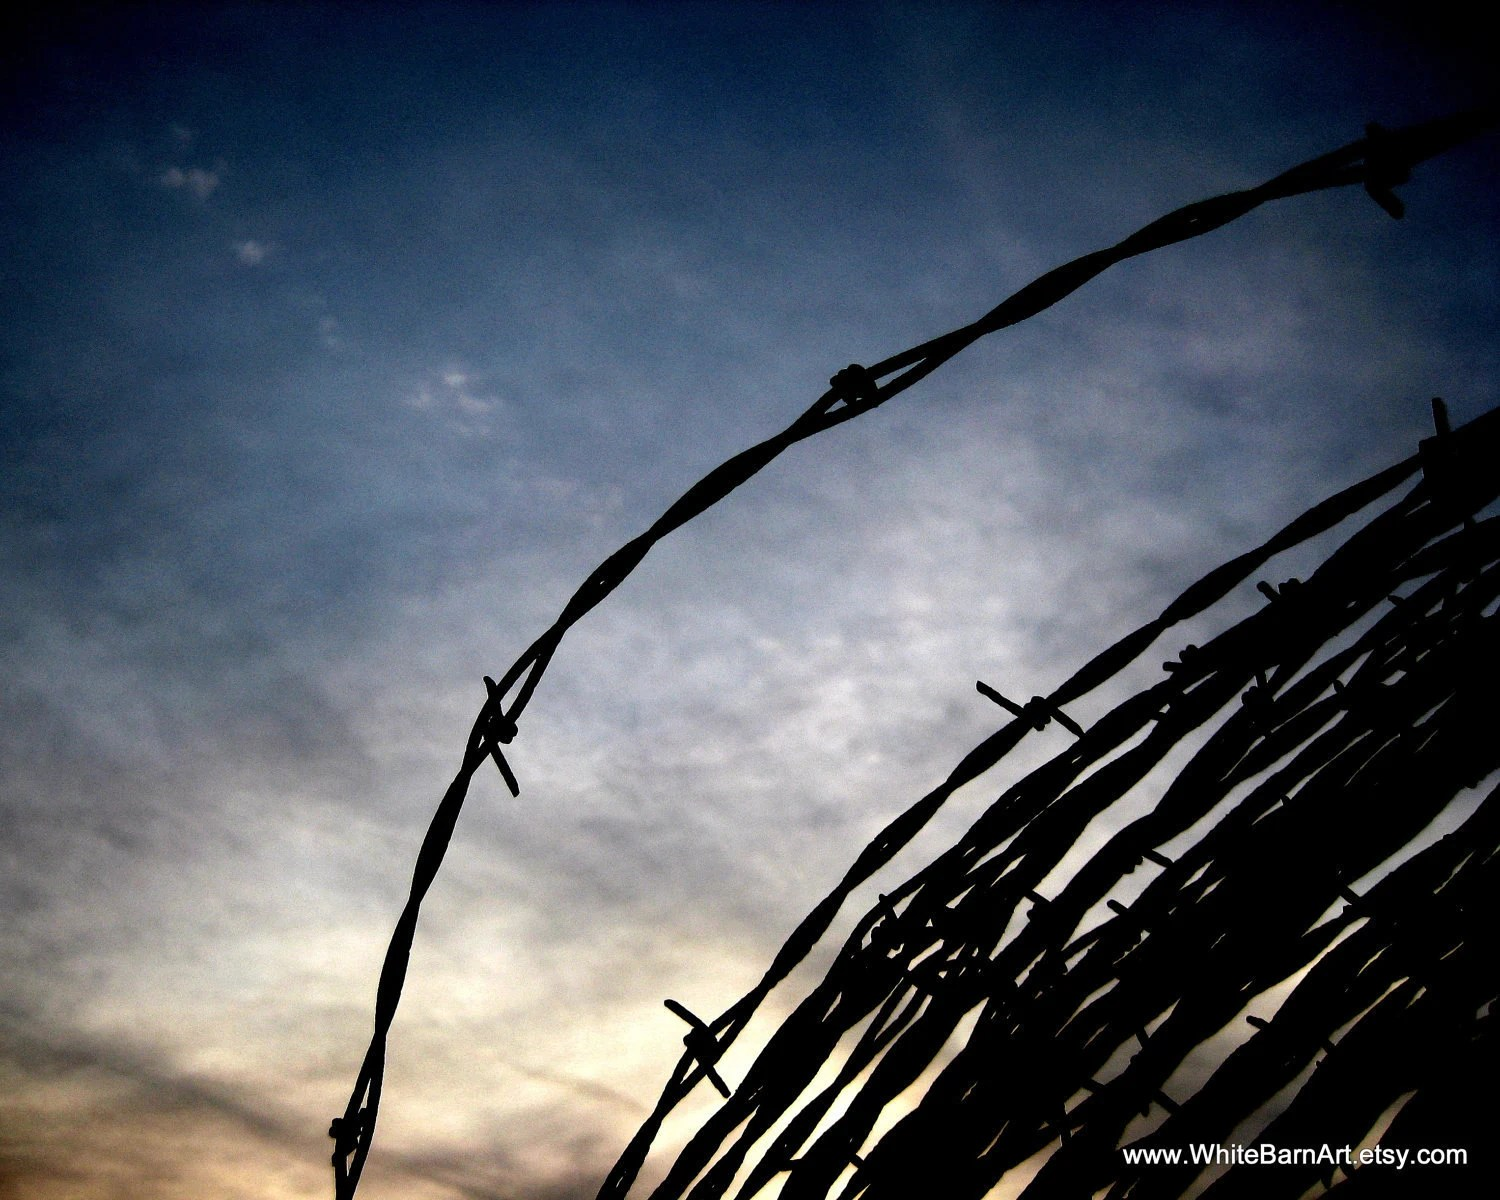 Barbed Wire Study 5  - 16 x 20 Fine Art Photography -  Blue Orange Sunset Rustic Industrial Decor - FREE SHIPPING - TAGT Team - WhiteBarnArt